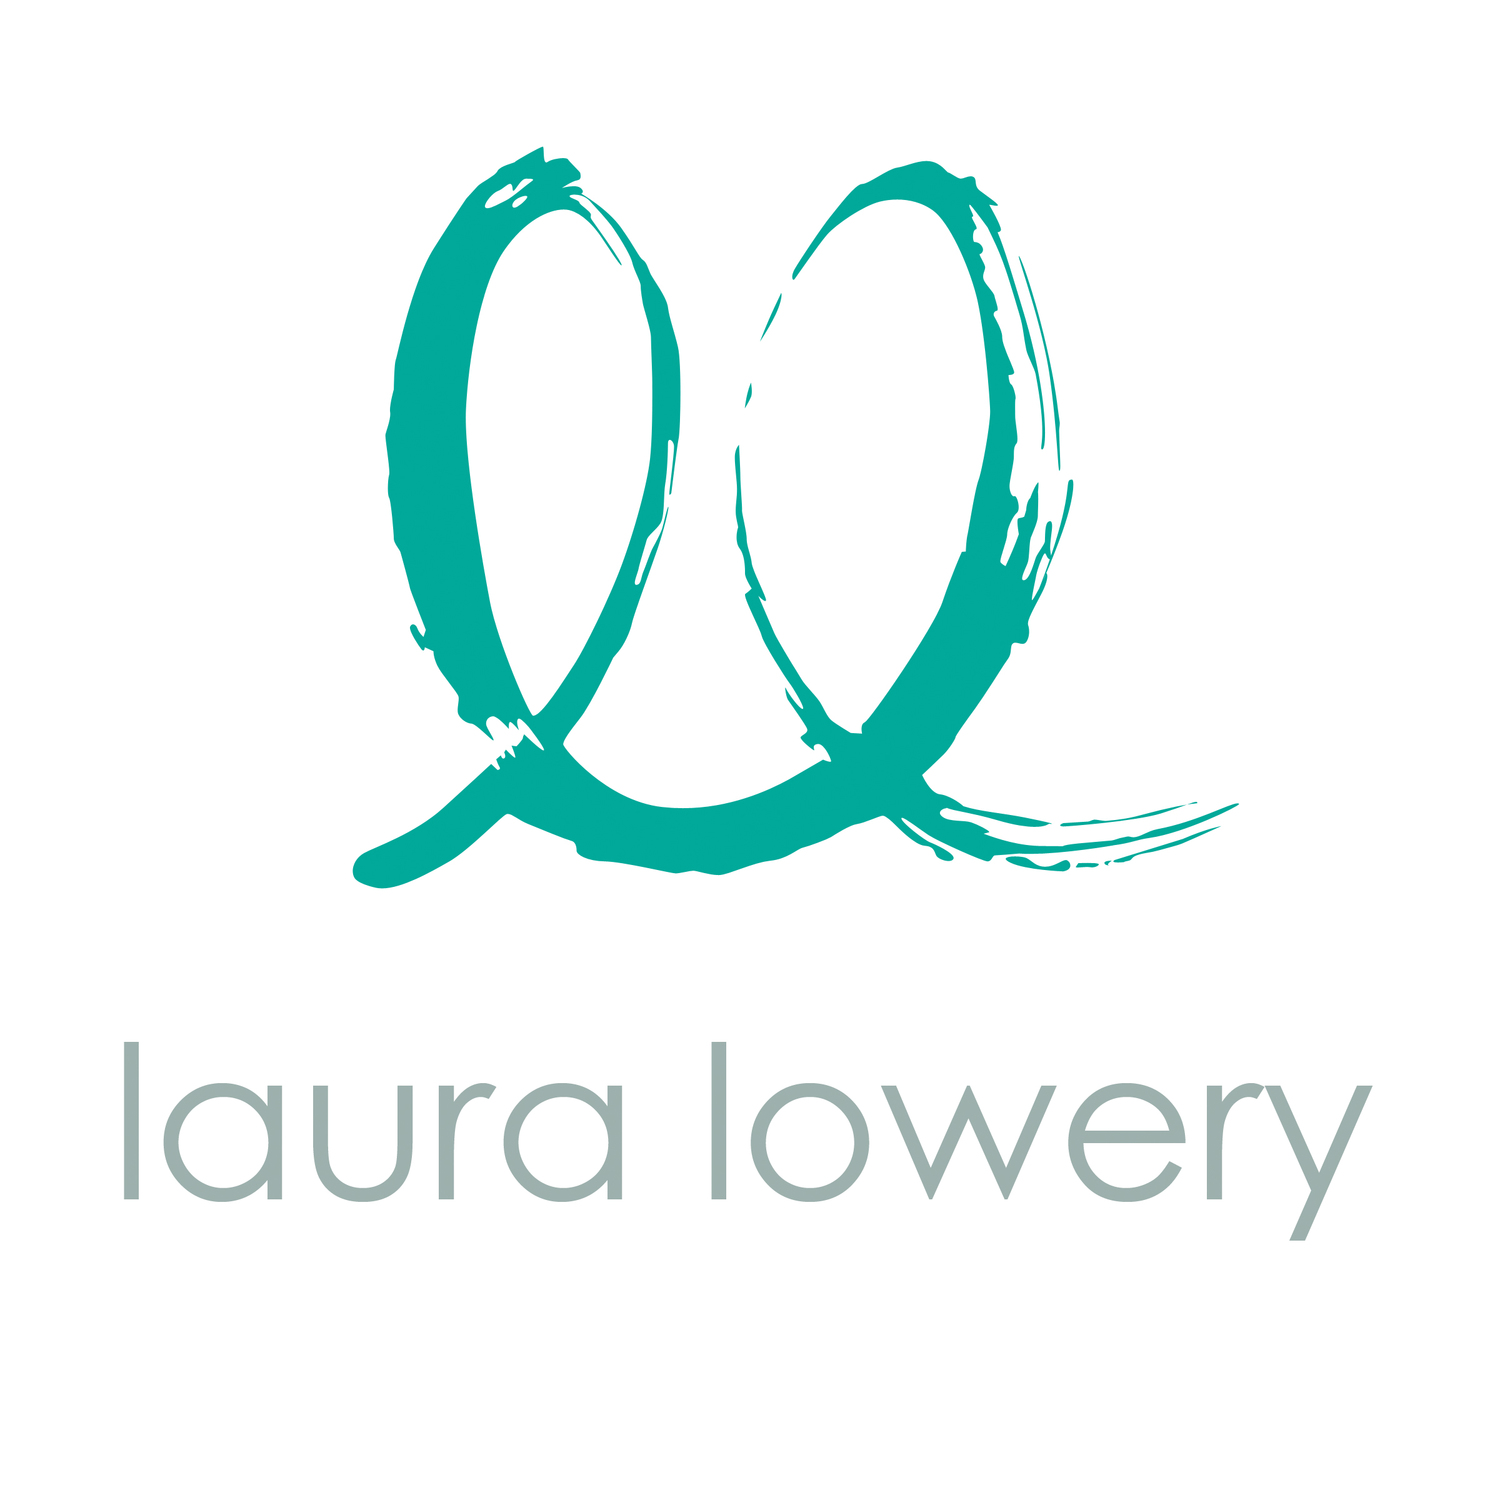 laura lowery